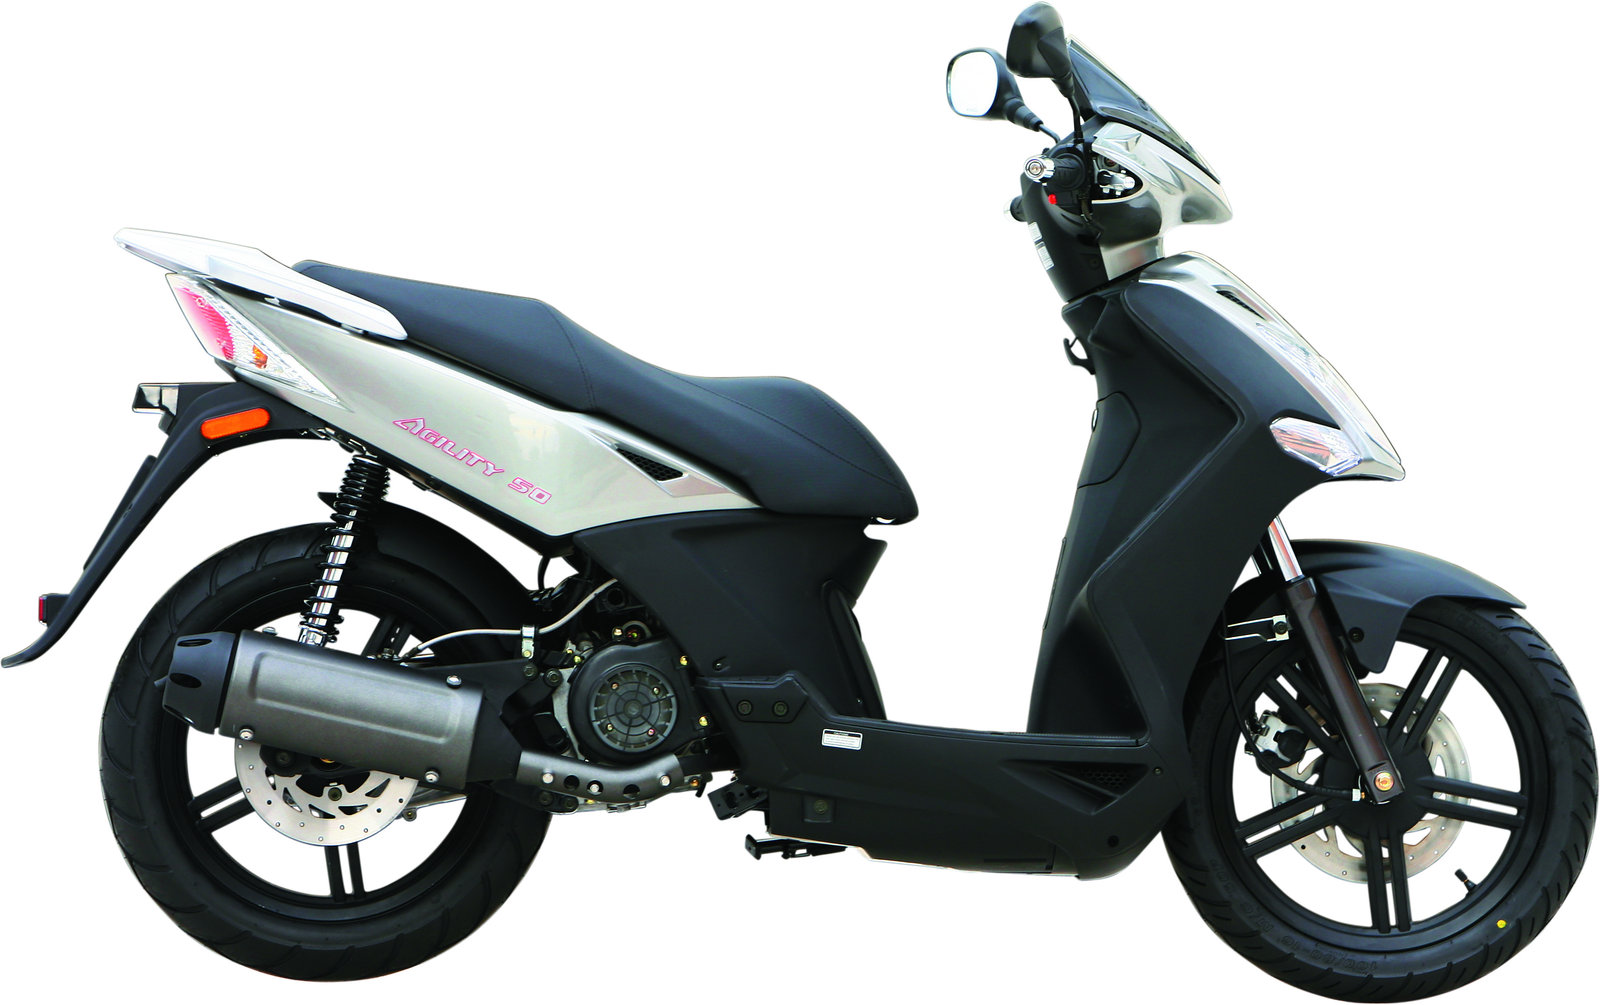 Kymco Agility 50 2006 images #101923